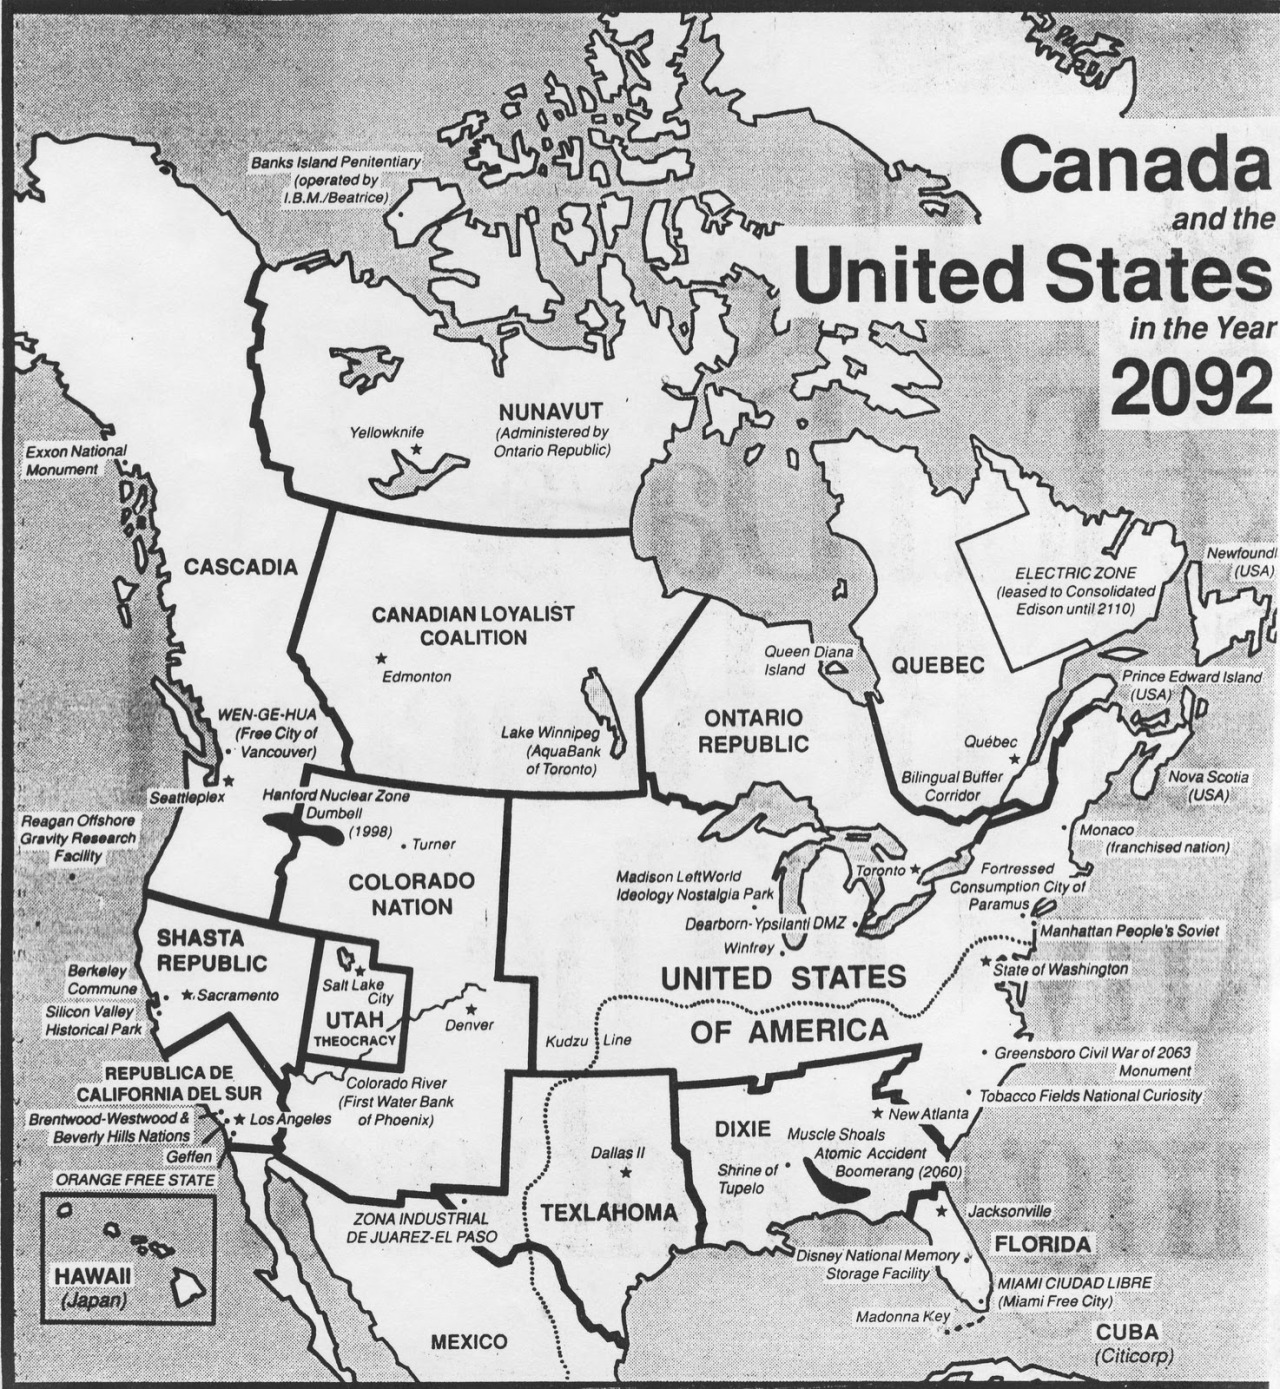 Canada & the United States in the year 2092